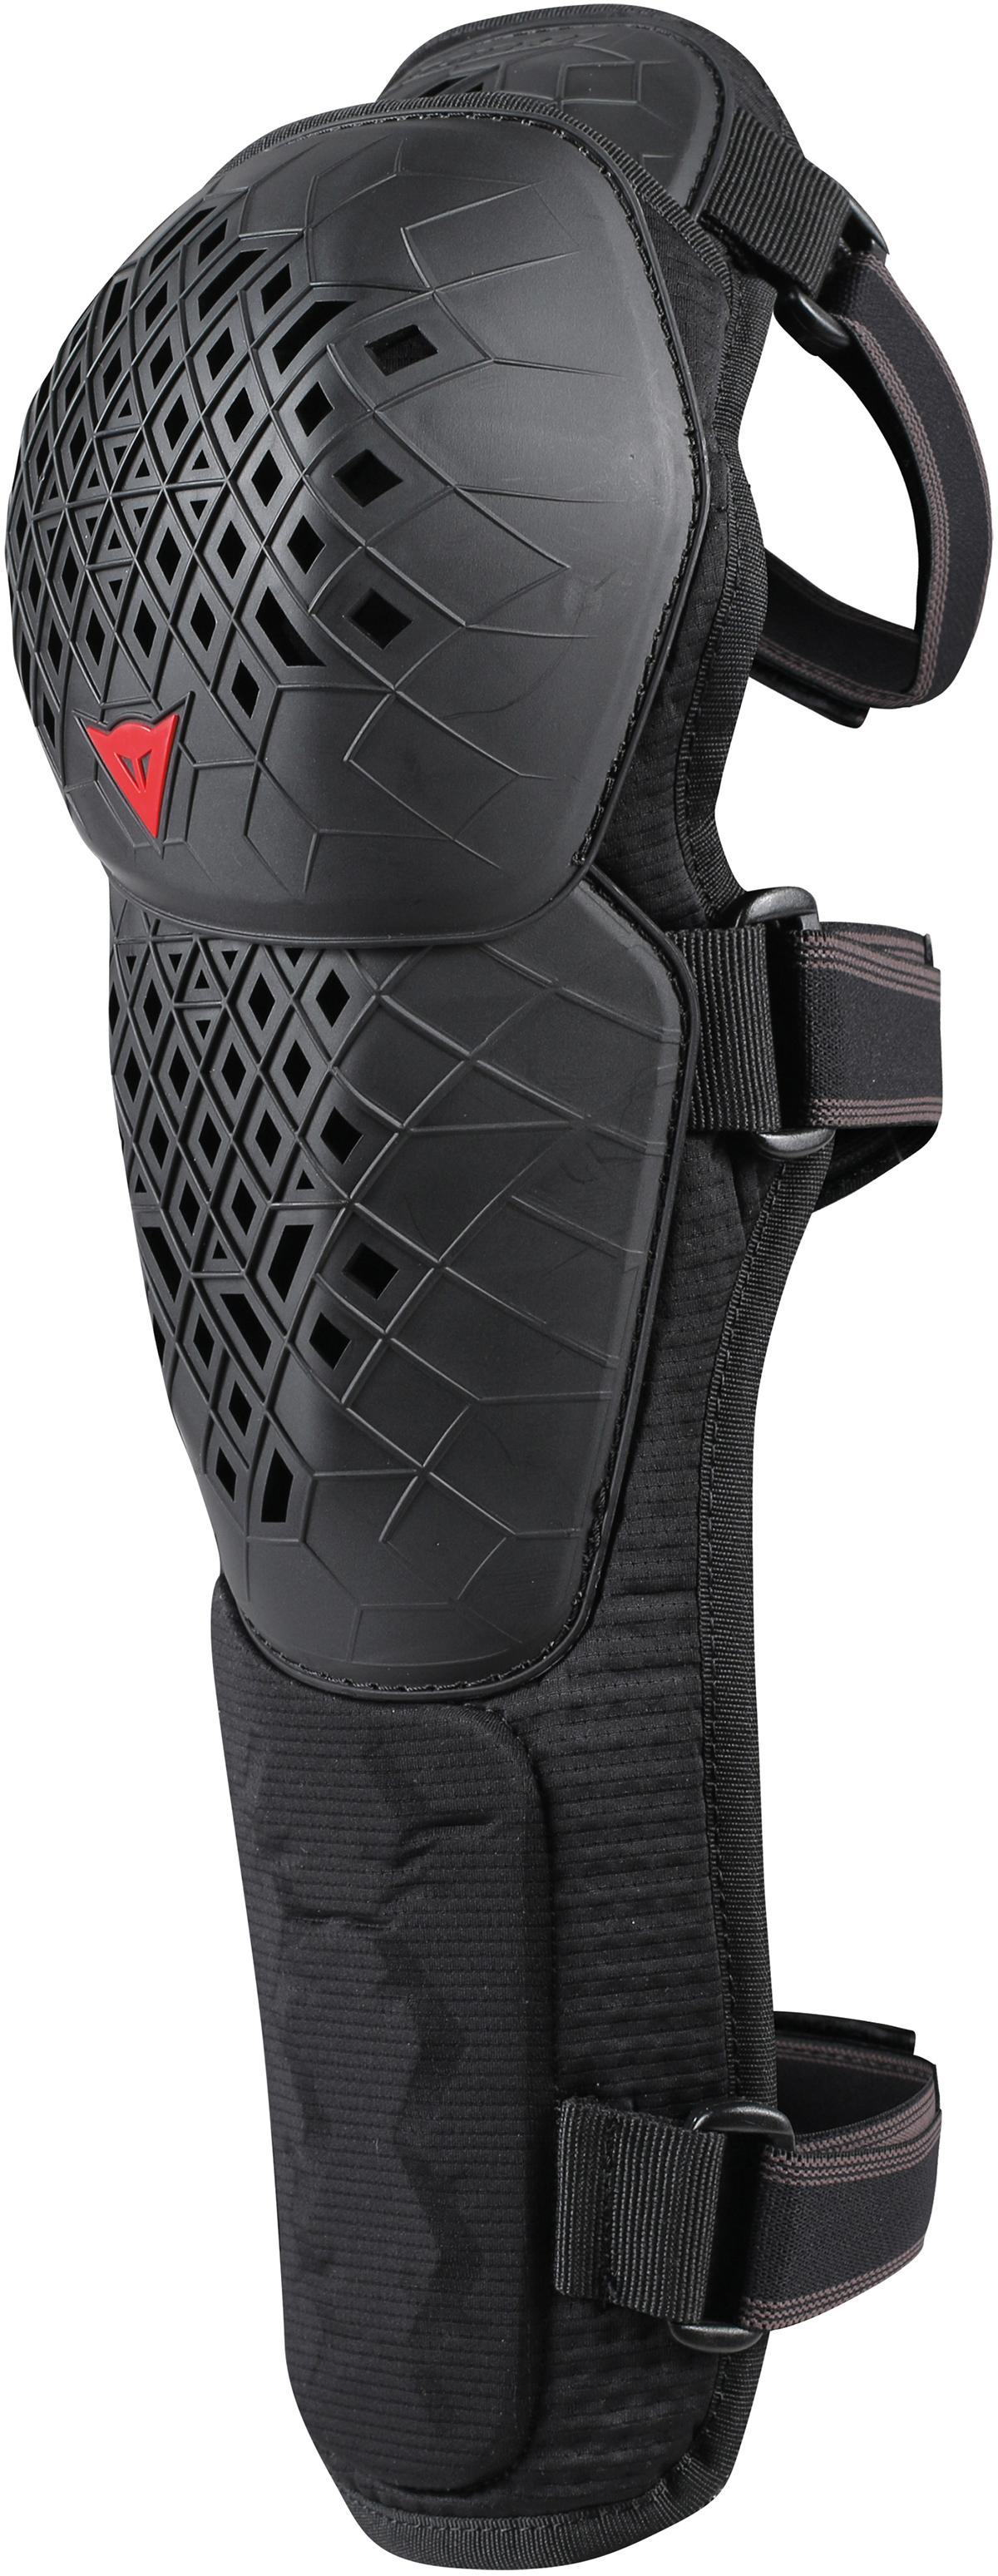 Dainese Armoform Lite Knæbeskyttere | Amour